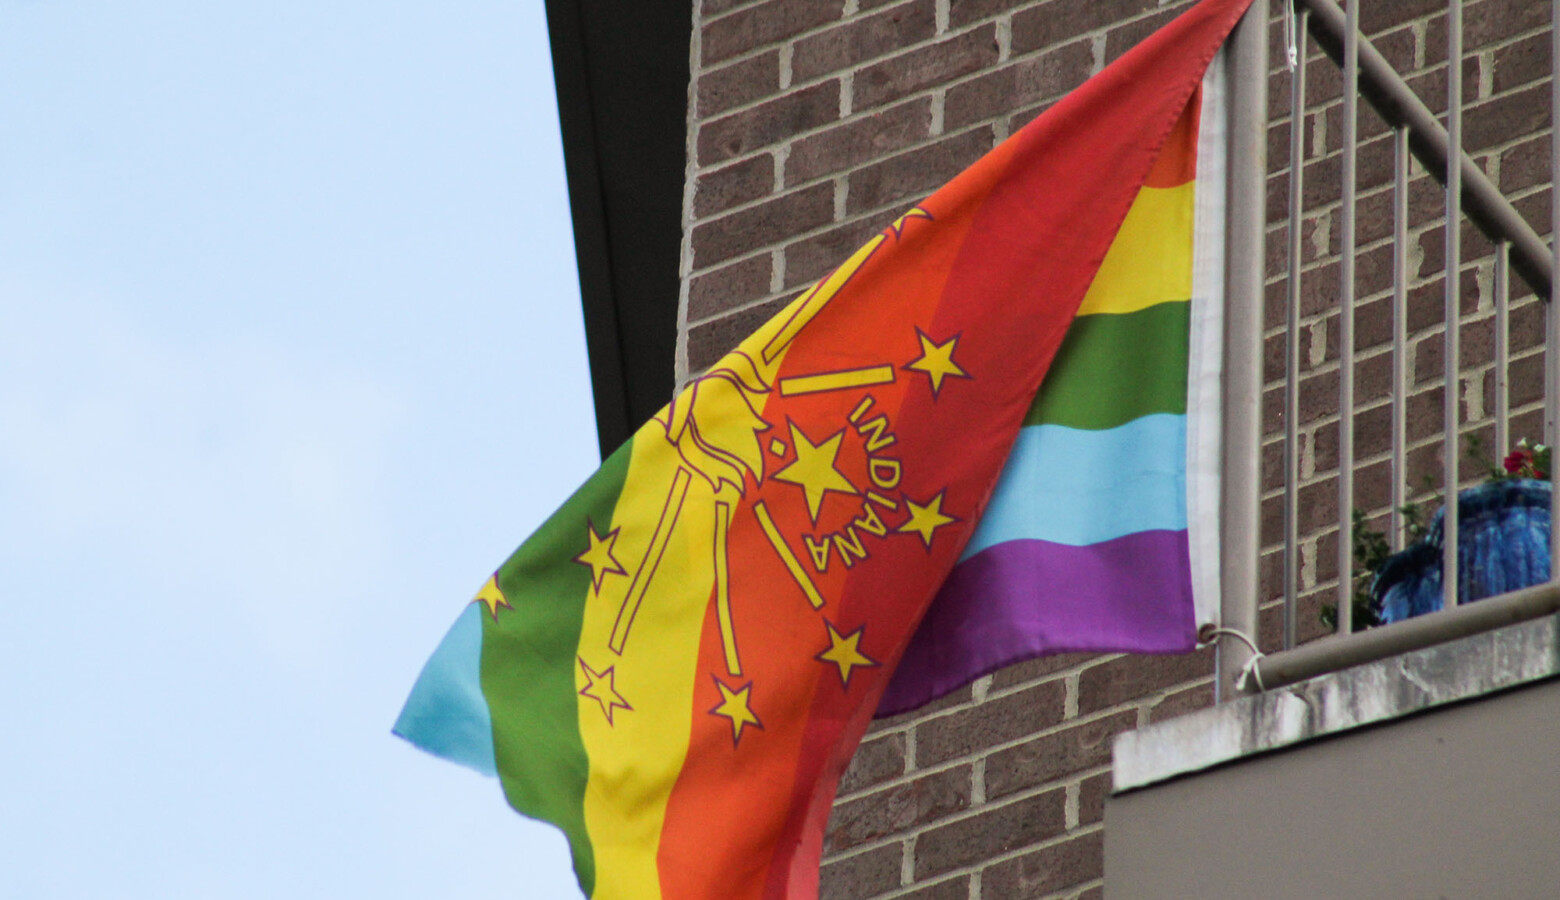 Catholic high schools in Indianapolis have faced increased scrutiny in recent years for firing employees in same-sex marriages. (Lauren Chapman/IPB News)